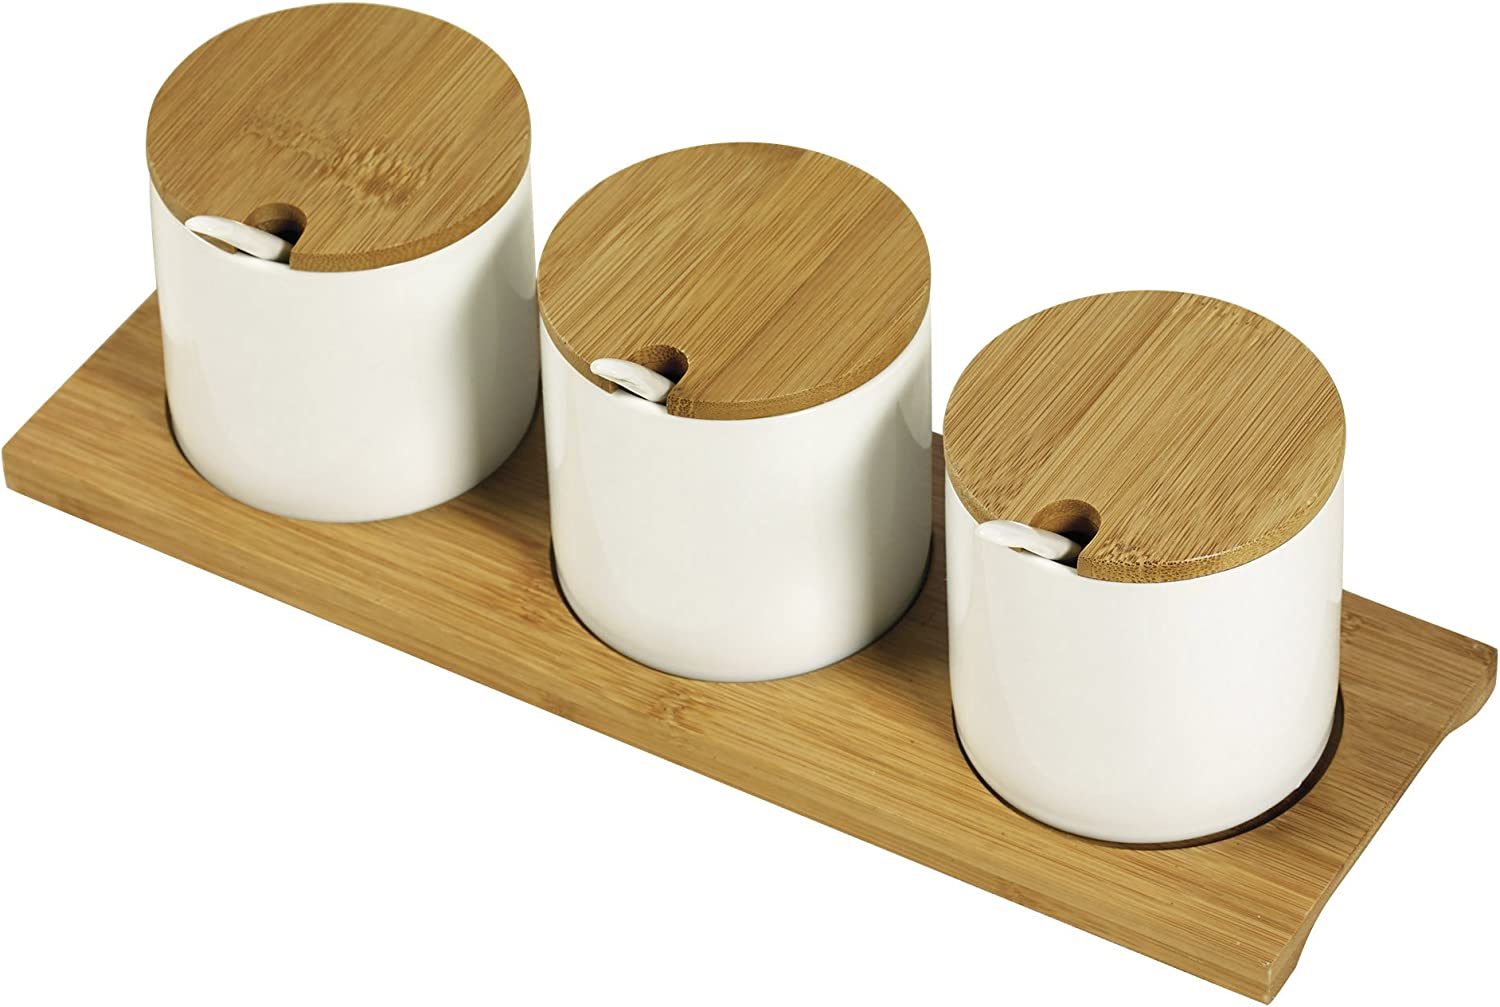 Denmark White and Bamboo Wood Serveware- Parties Catering Entertaining, 10 Piece Condiment Canister Set with Spoons and Tray